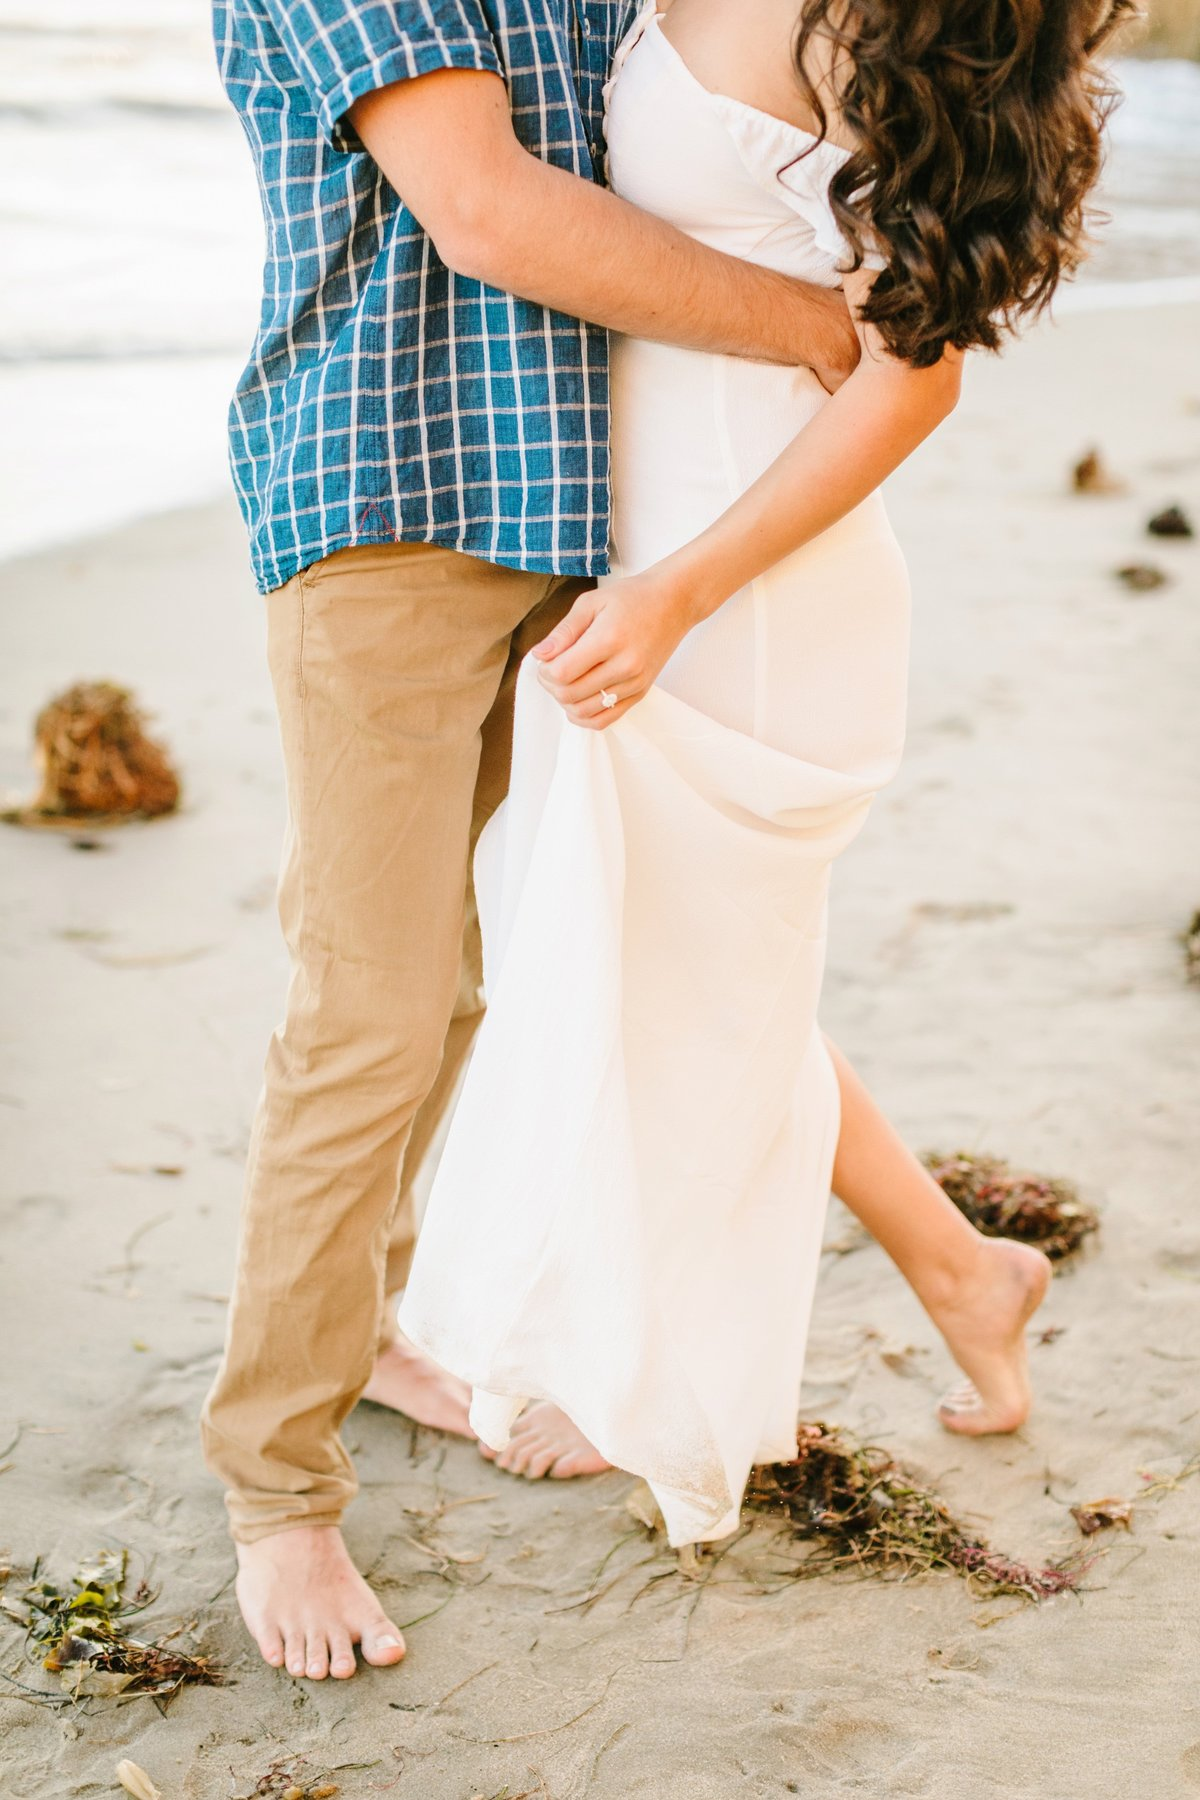 Best California Engagement Photographer-Jodee Debes Photography-56